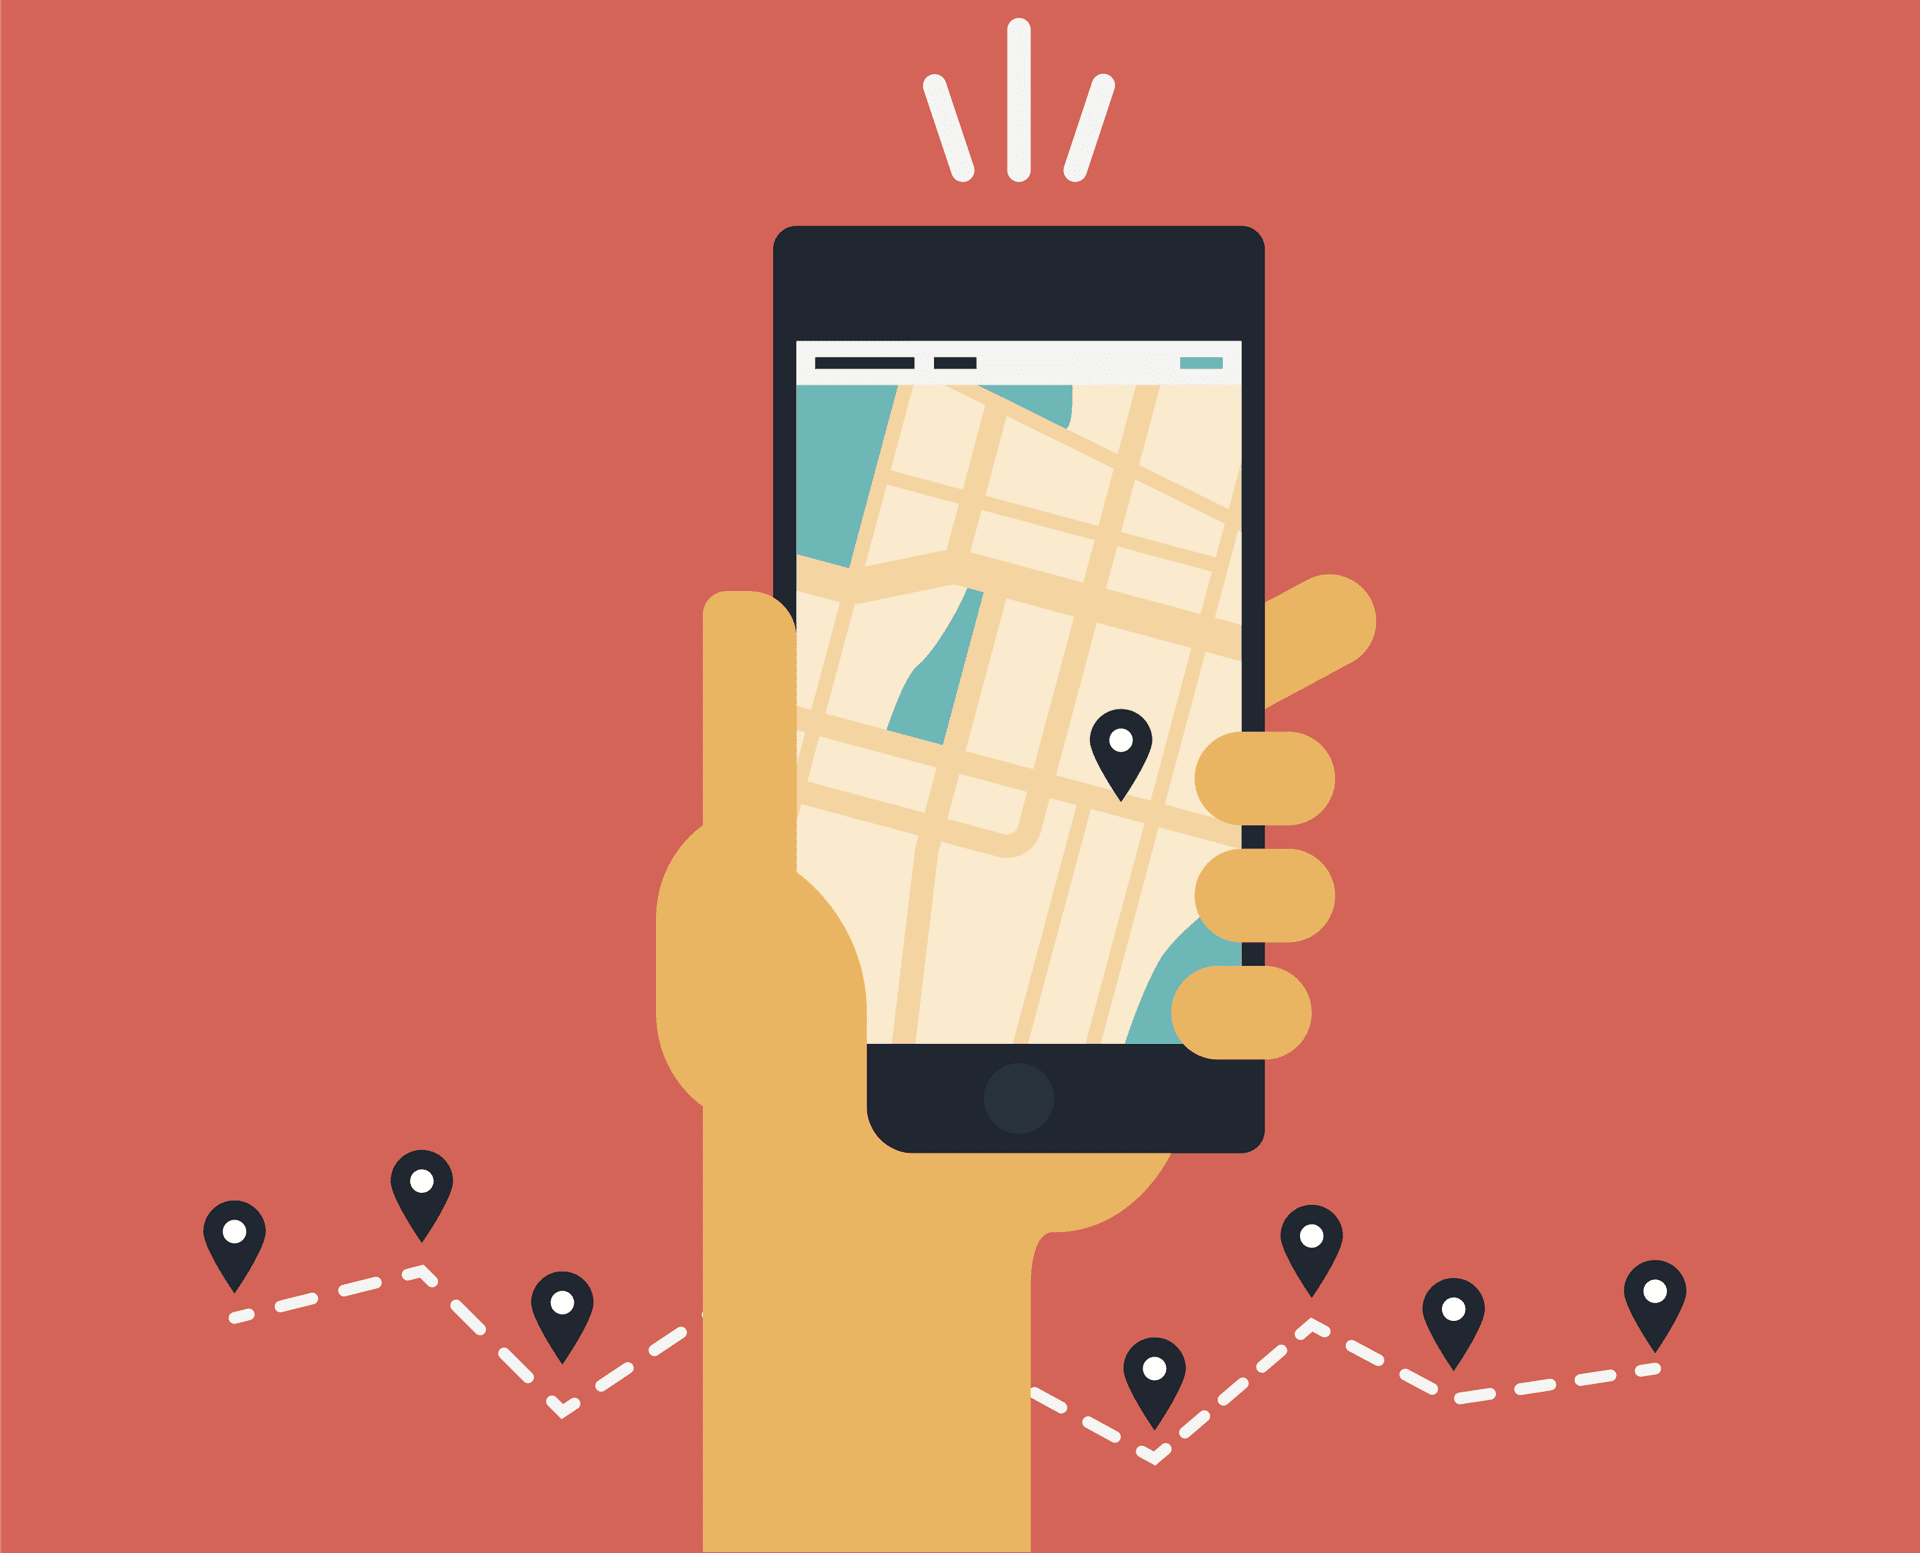 How Can I Know Other's Mobile Location